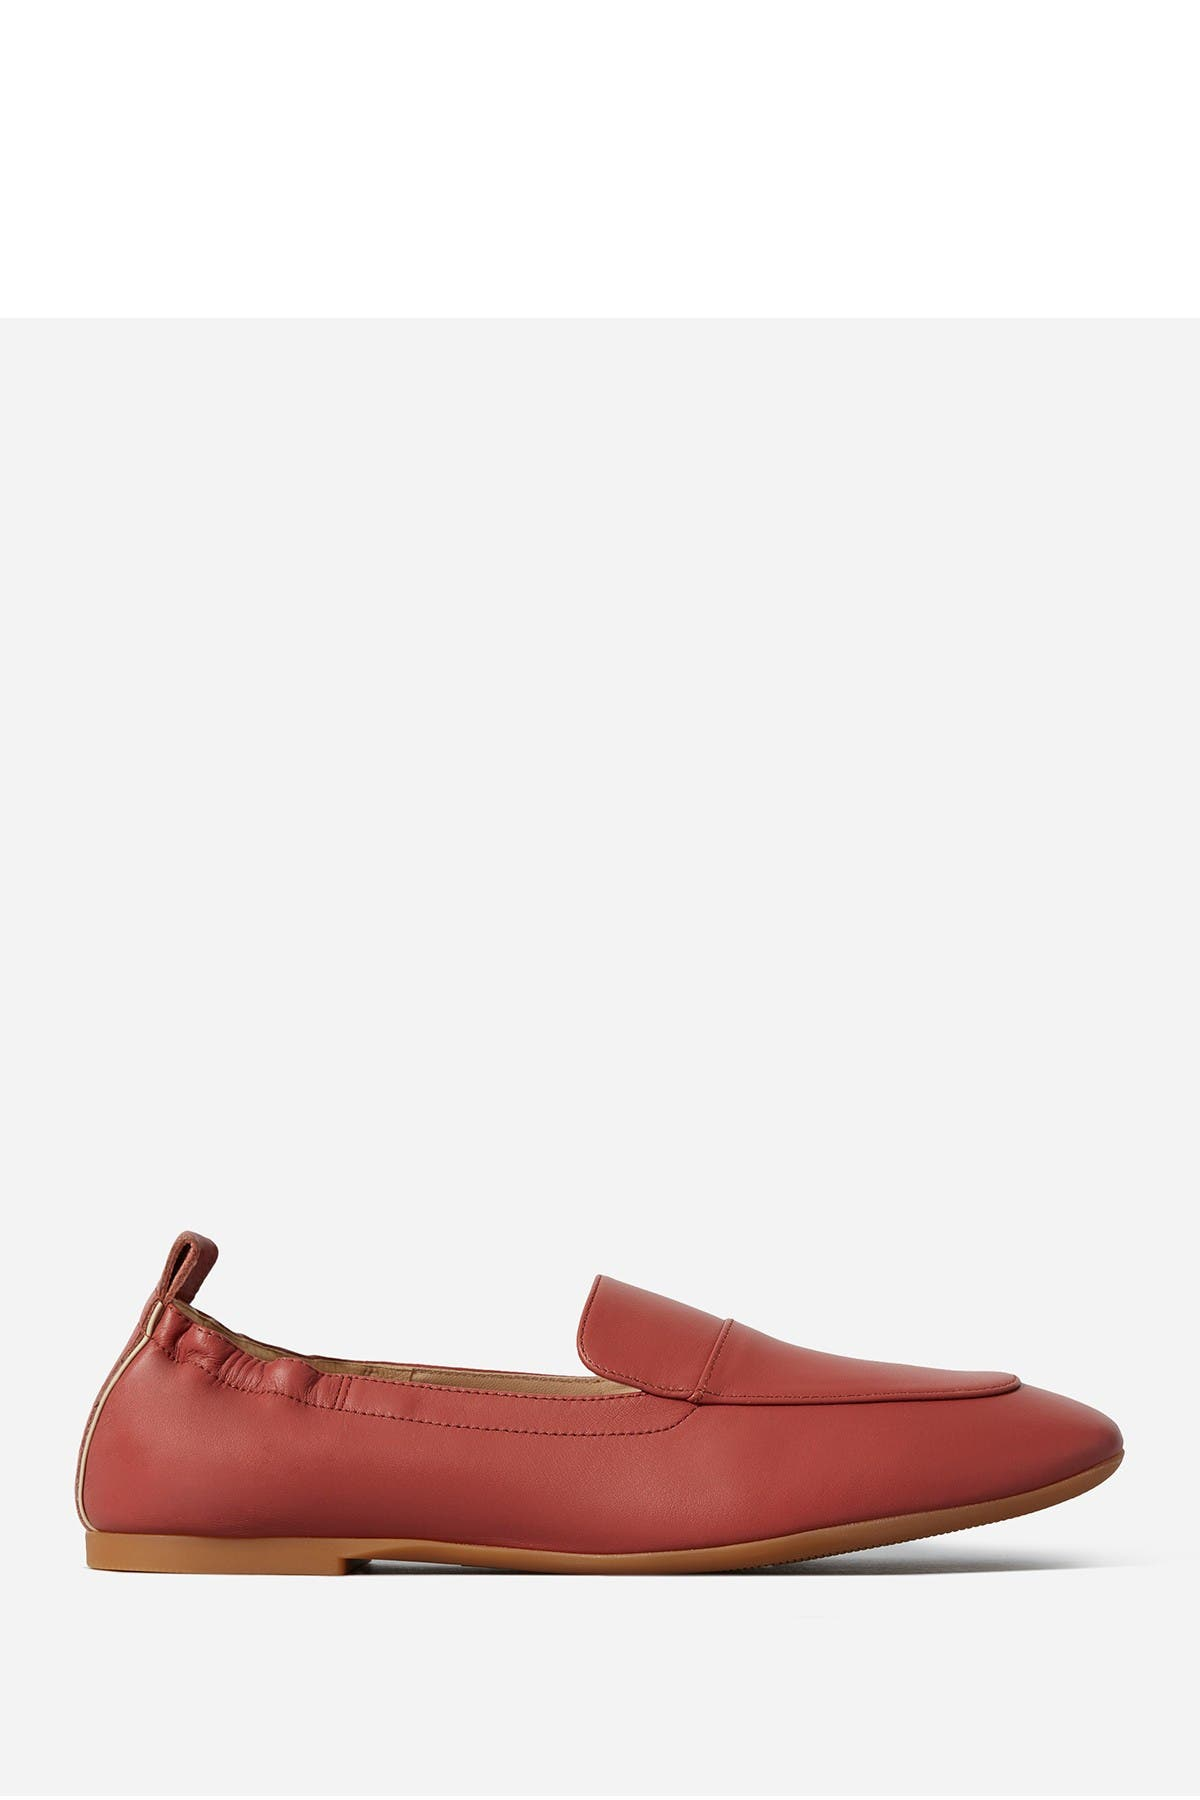 Image of EVERLANE The Day Leather Loafer